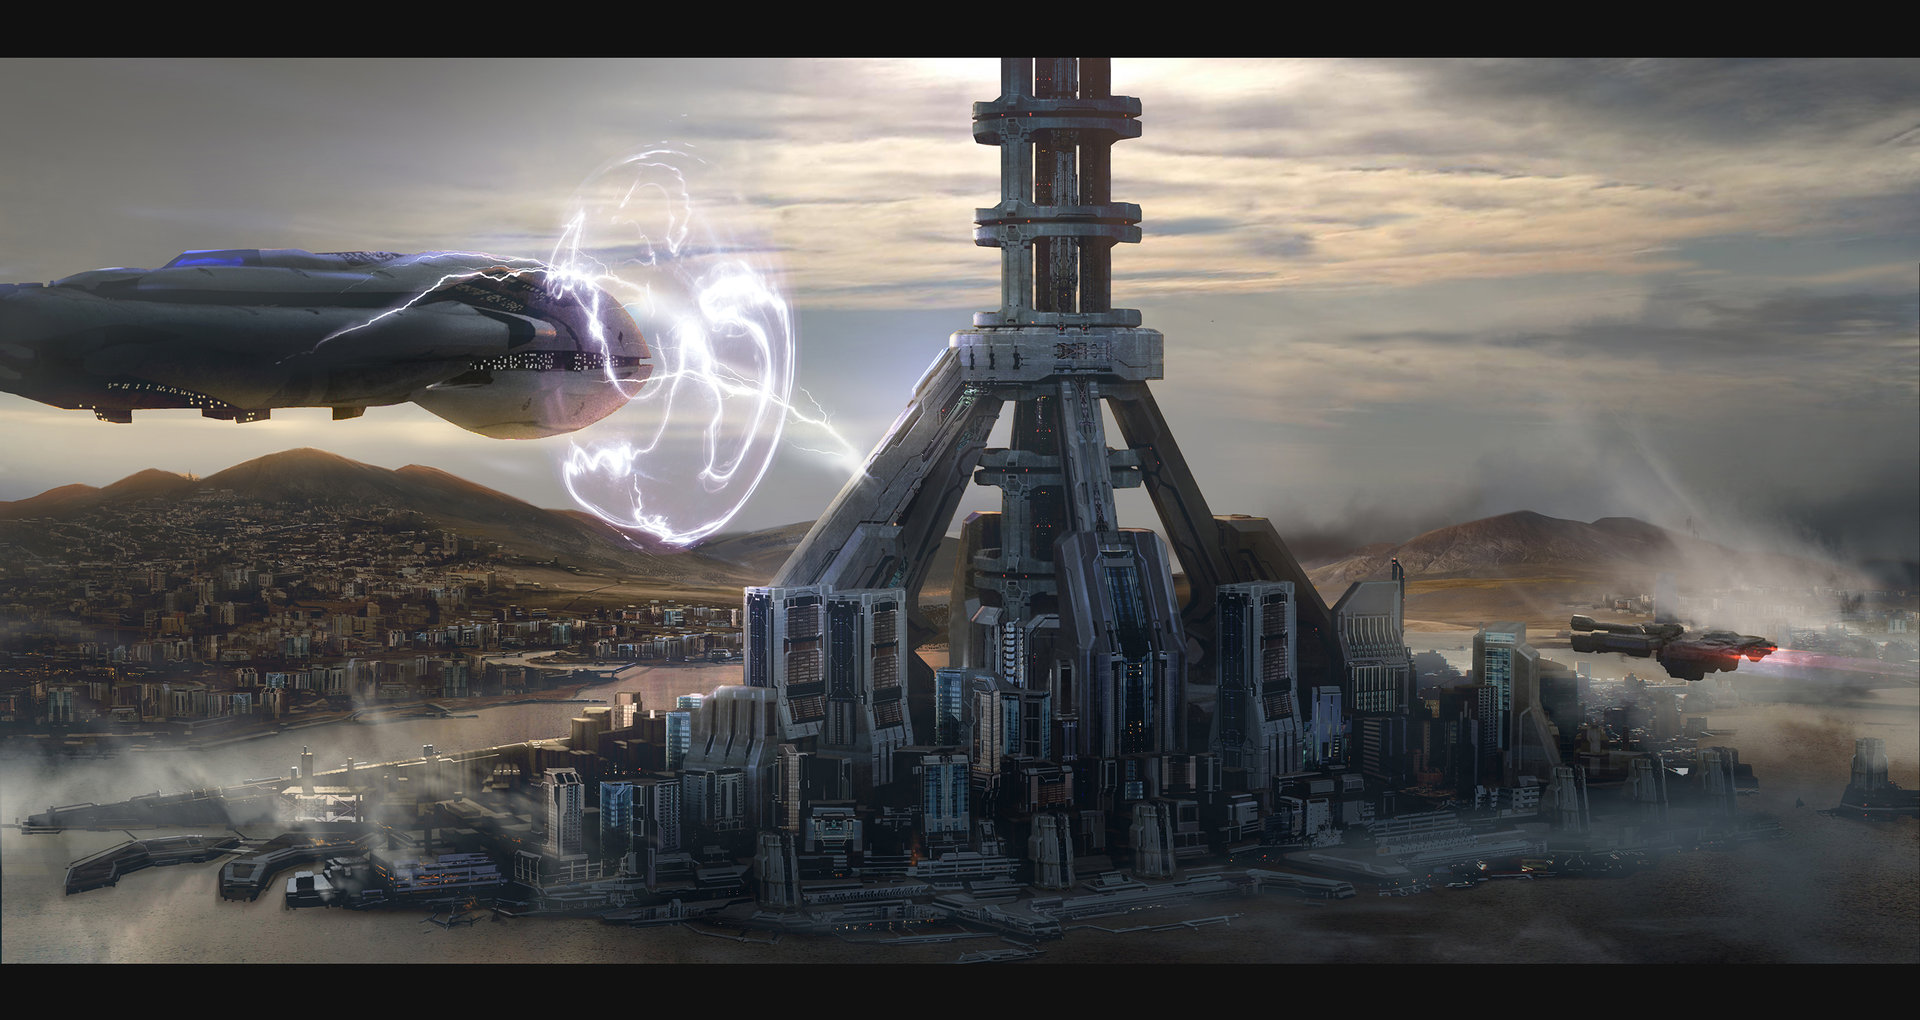 H2A_Concept_NewMombasa_InAmberClad-Solemn_Penance-Slipspace1.jpg